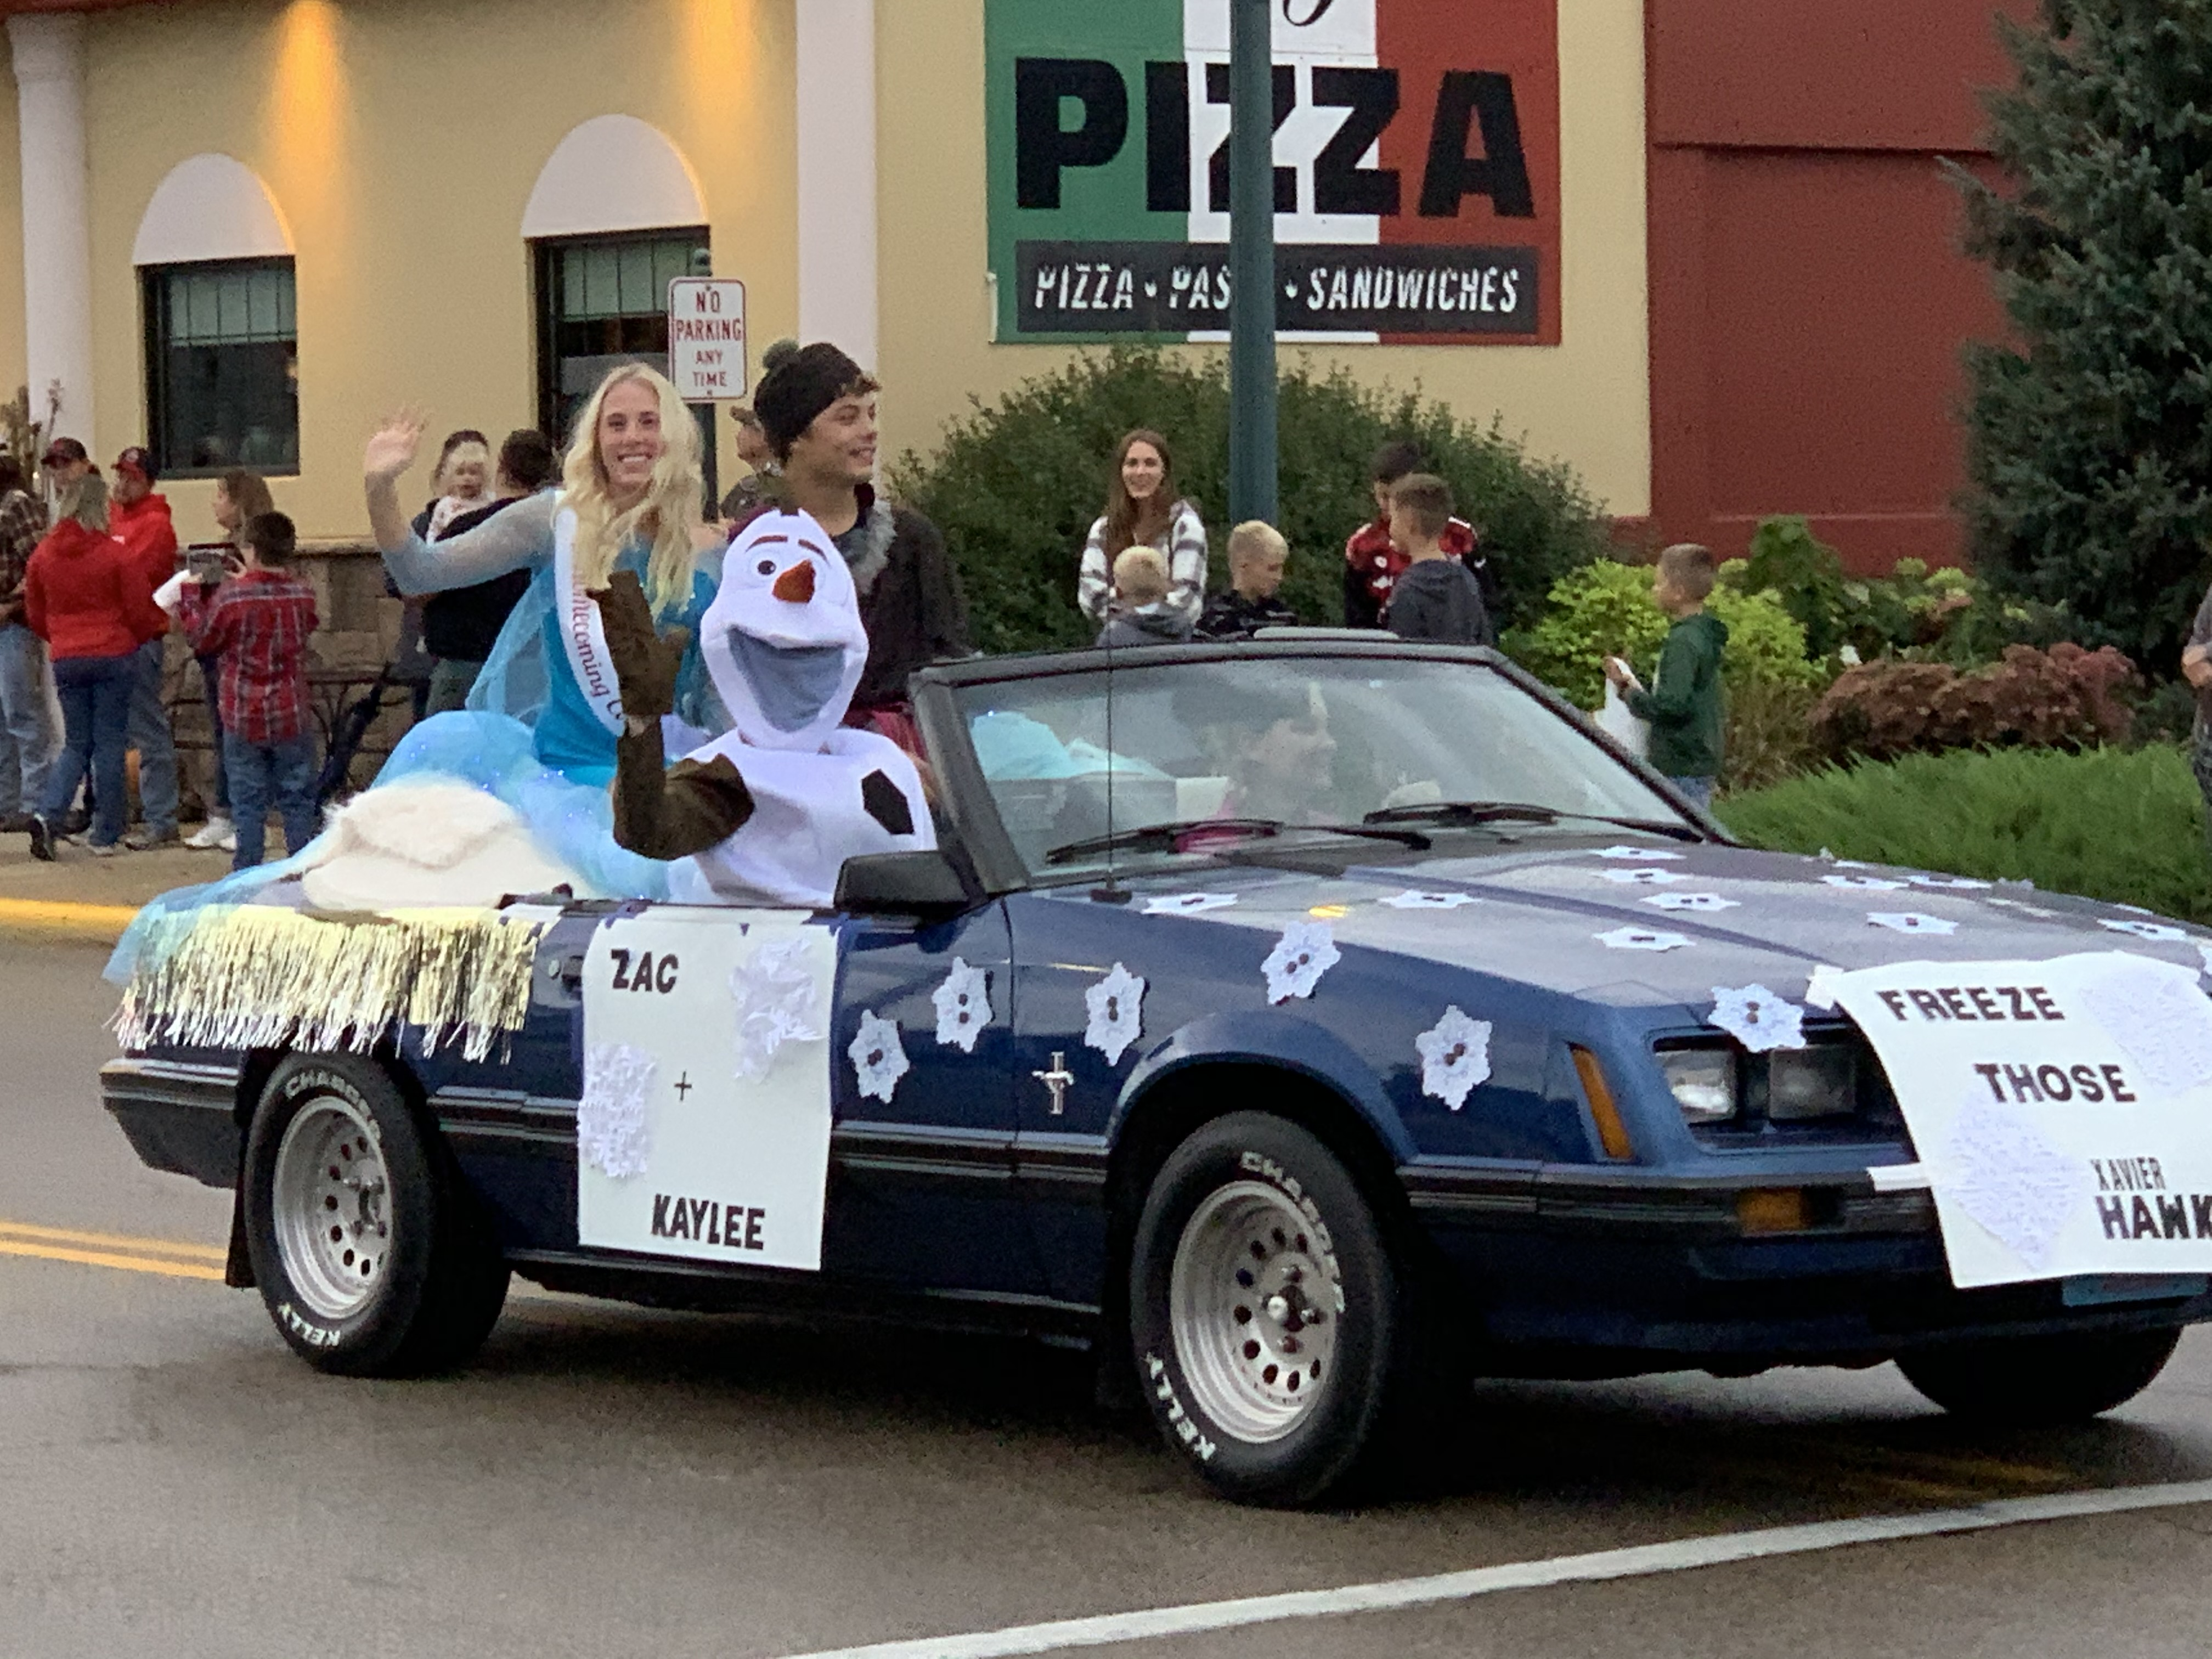 """In an effort to """"freeze"""" the rival Xavier Hawks, a float containing the """"Frozen"""" character Olaf greets visitors on Main Street during the Sept. 24 homecoming parade.Luke Reimer 